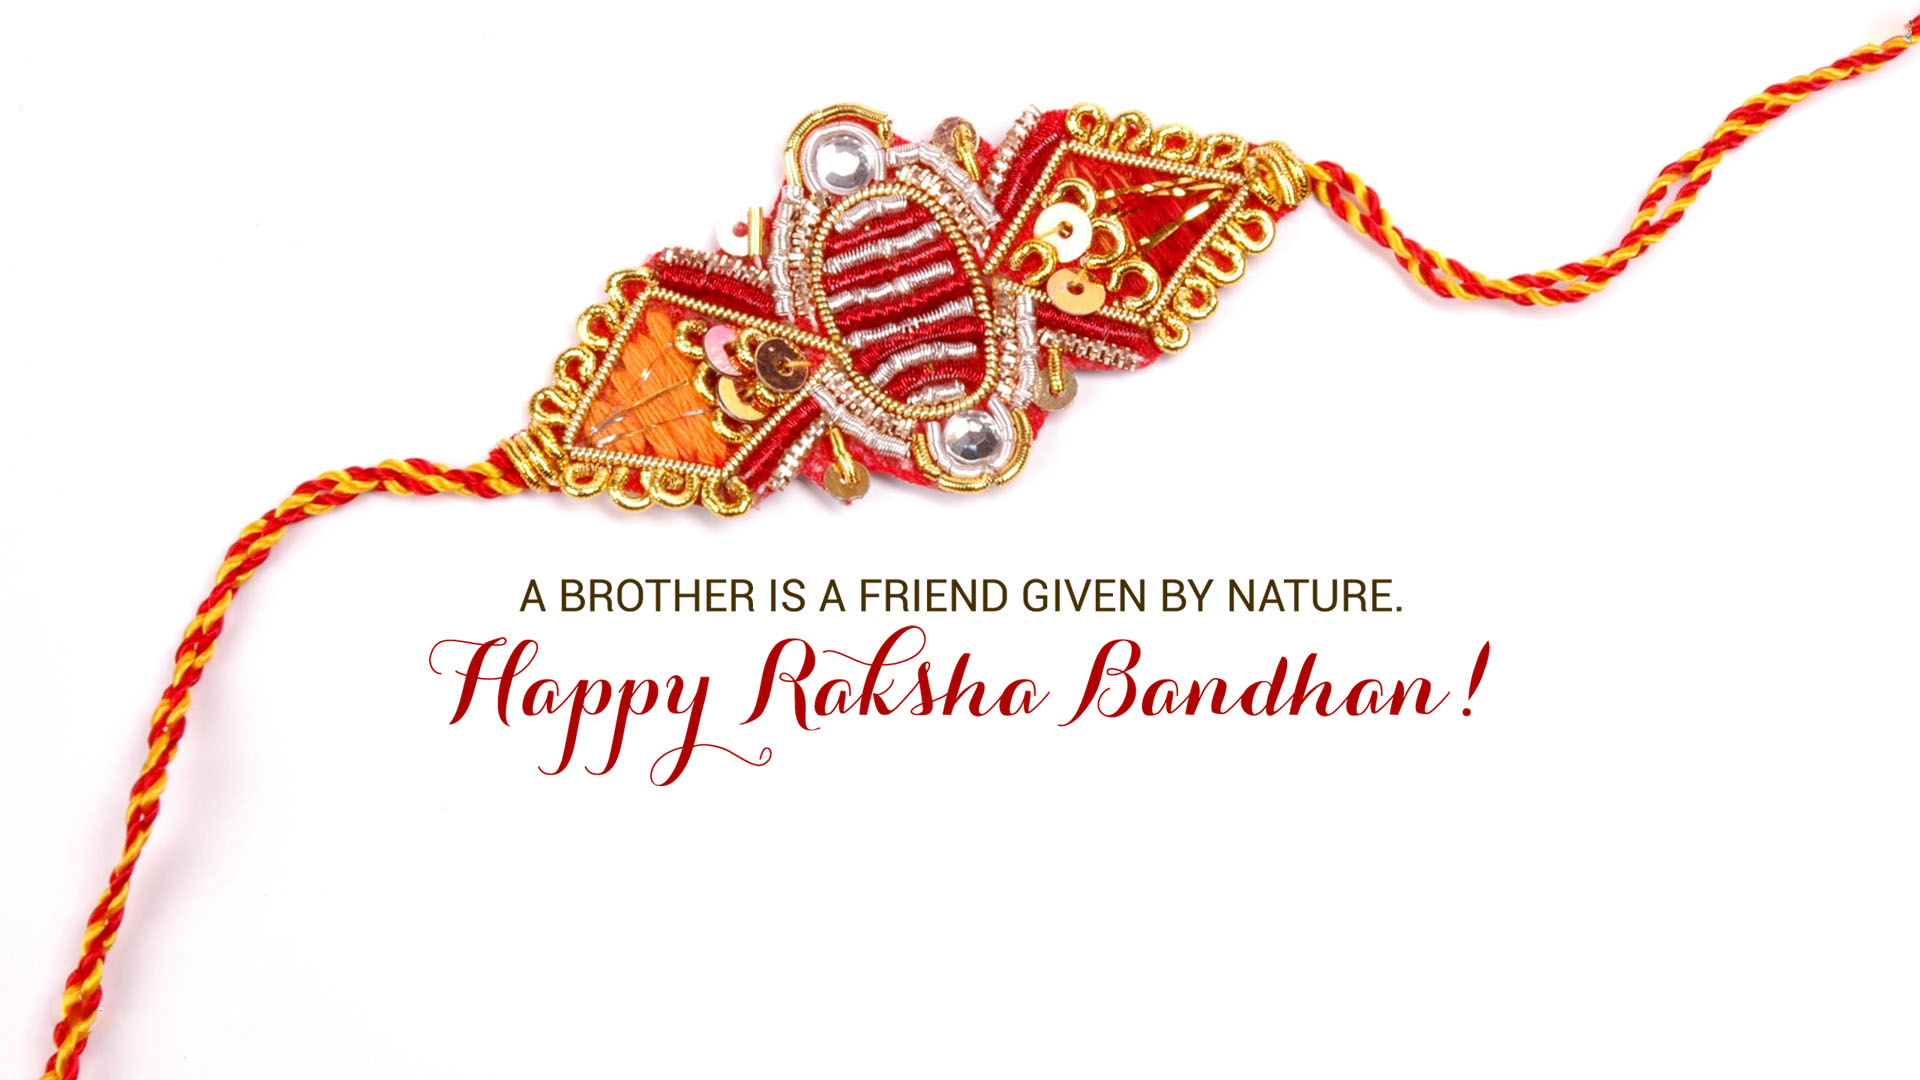 Happy Raksha Bandhan Whatsaap DP Status 2015